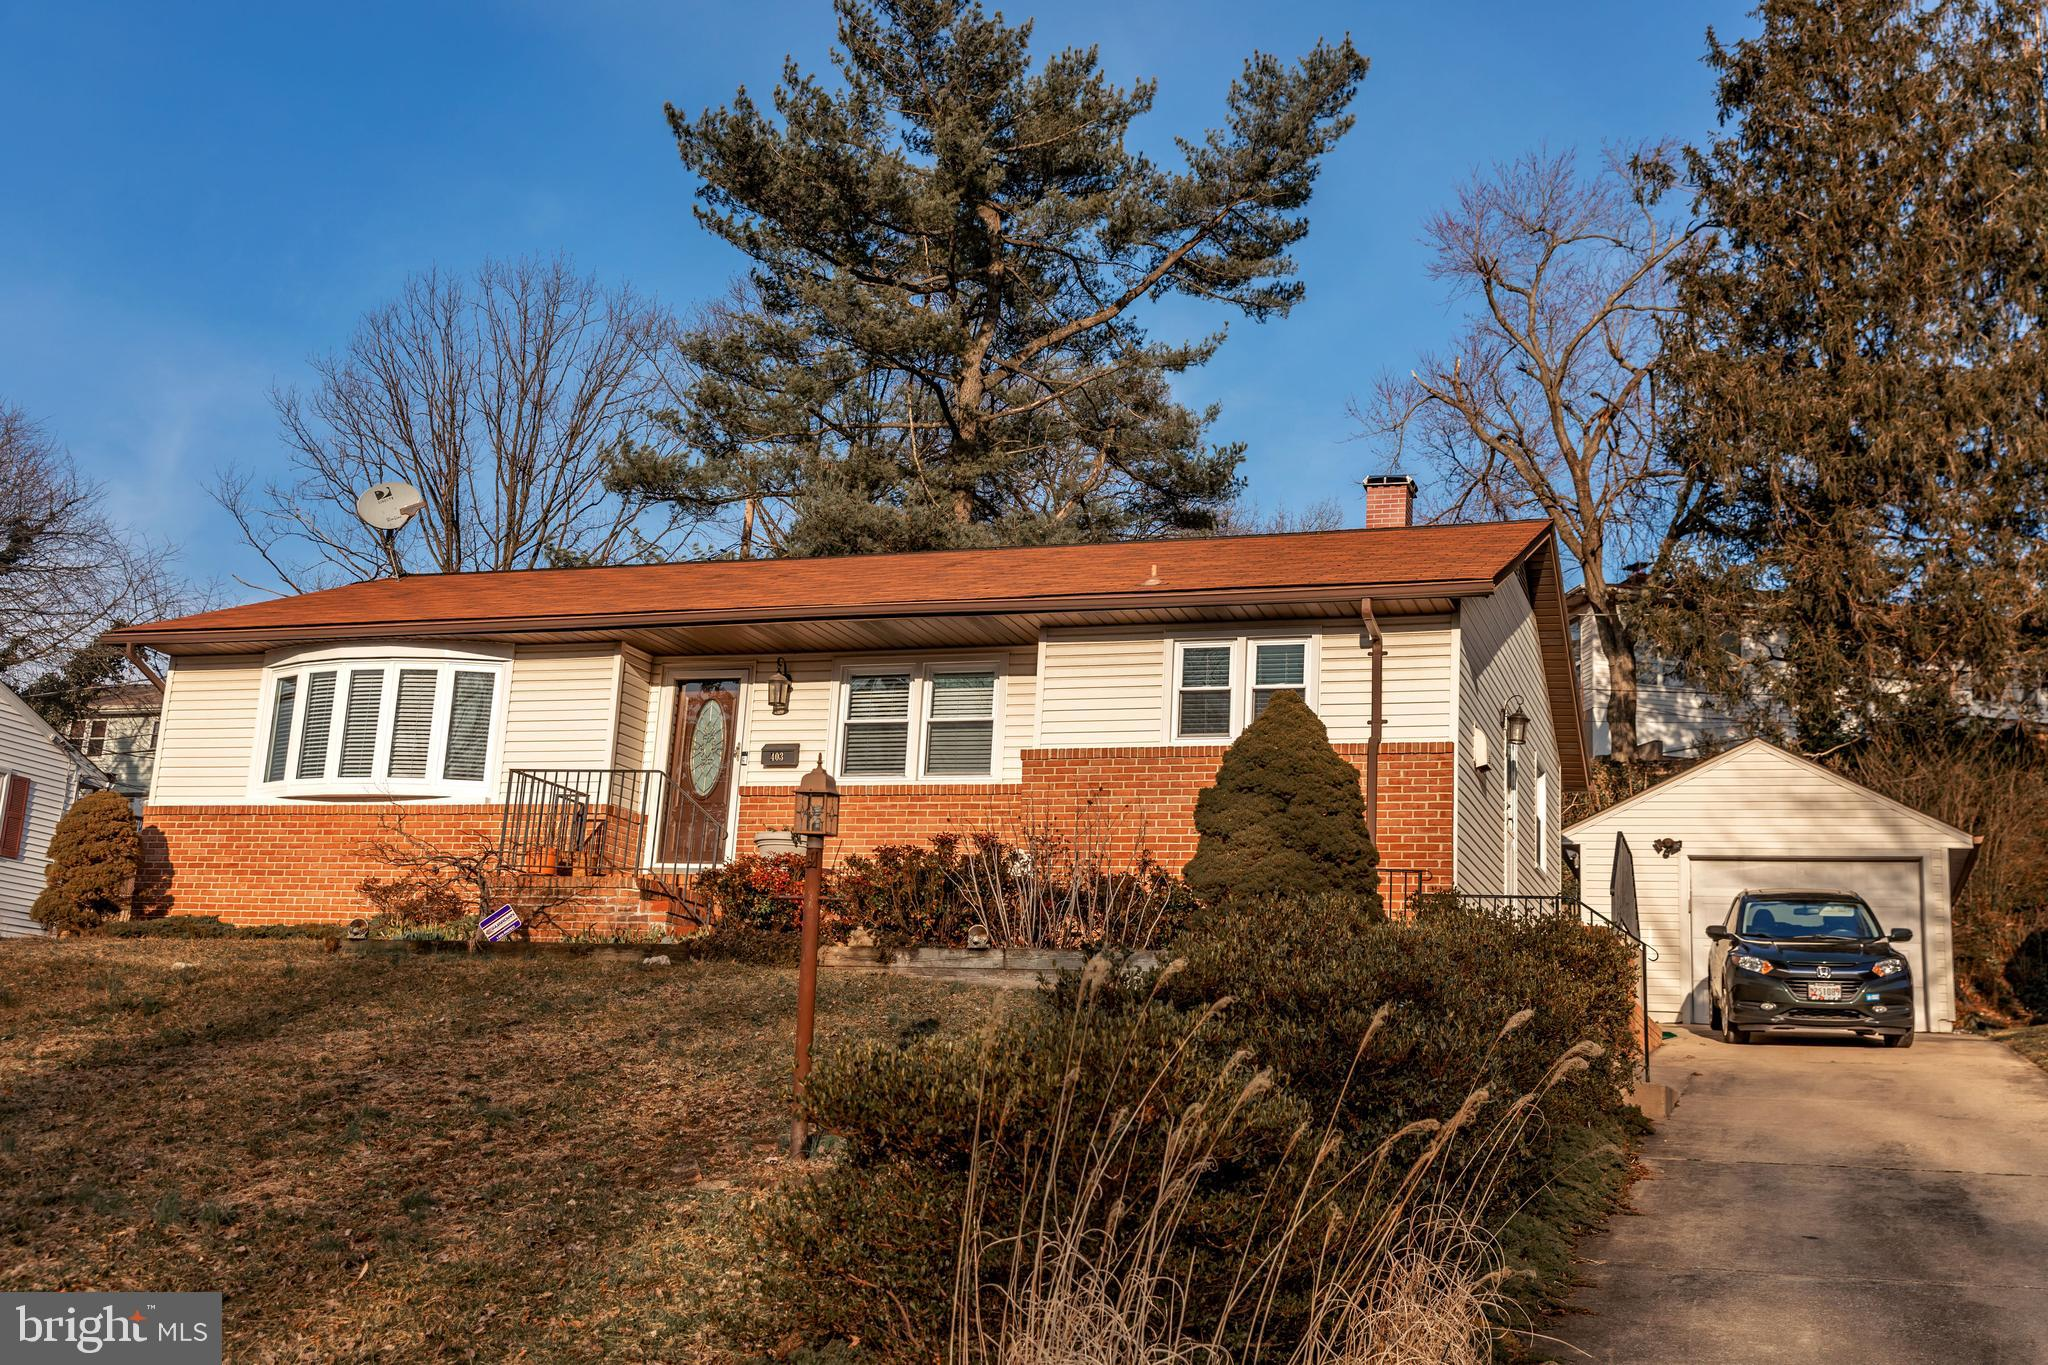 403 CATHERINE AVENUE, LINTHICUM, MD 21090